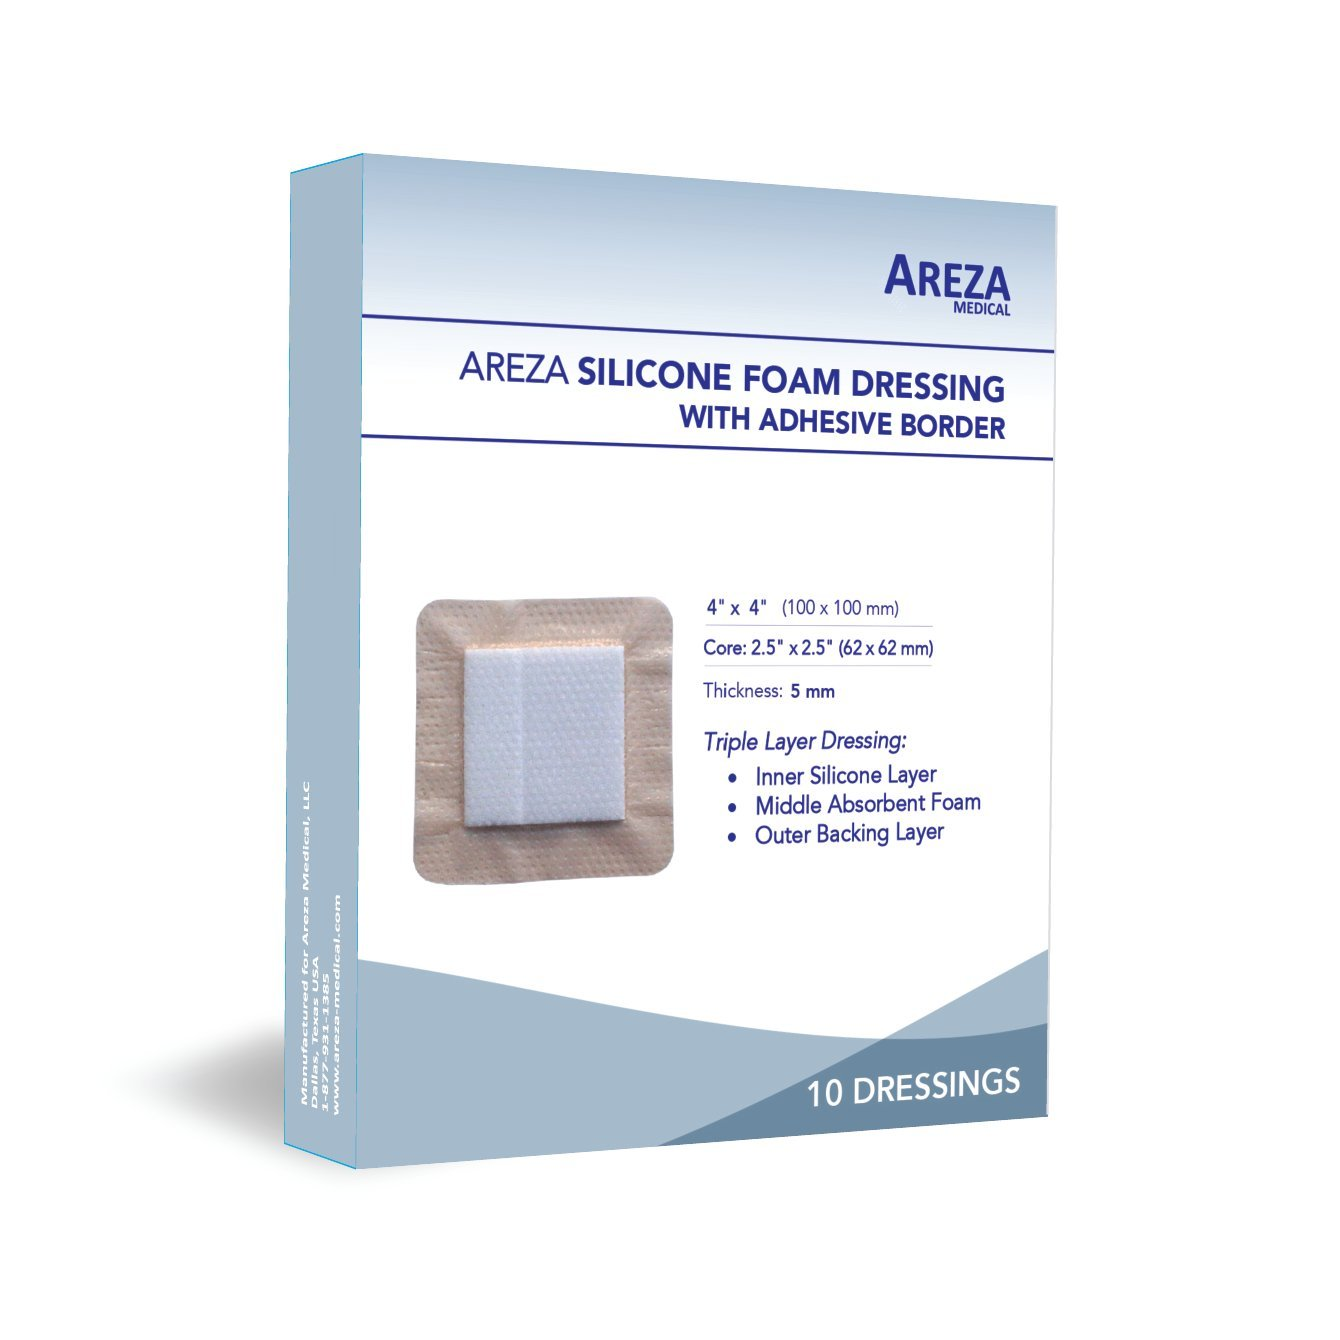 Silicone Foam Dressing with Border (Adhesive) Waterproof 4'' X 4'' (10 cm X 10 cm) (Central Ultra Absorbent-Foam 2.5'' X 2.5'') 10 Per Box (1) Wound Dressing by Areza Medical by Areza Medical